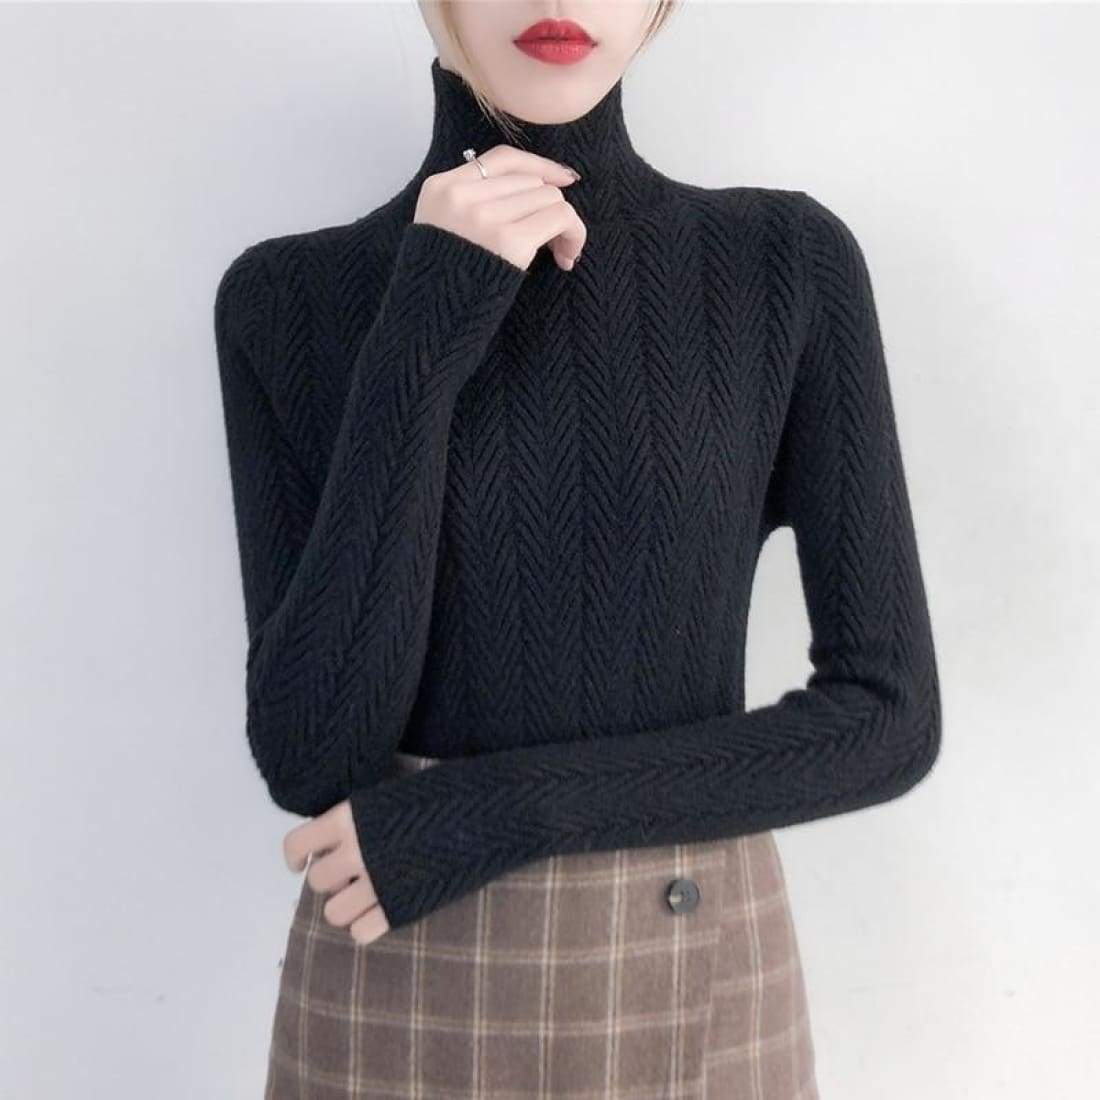 Fine knitted sweater with stand-up collar - Black / S